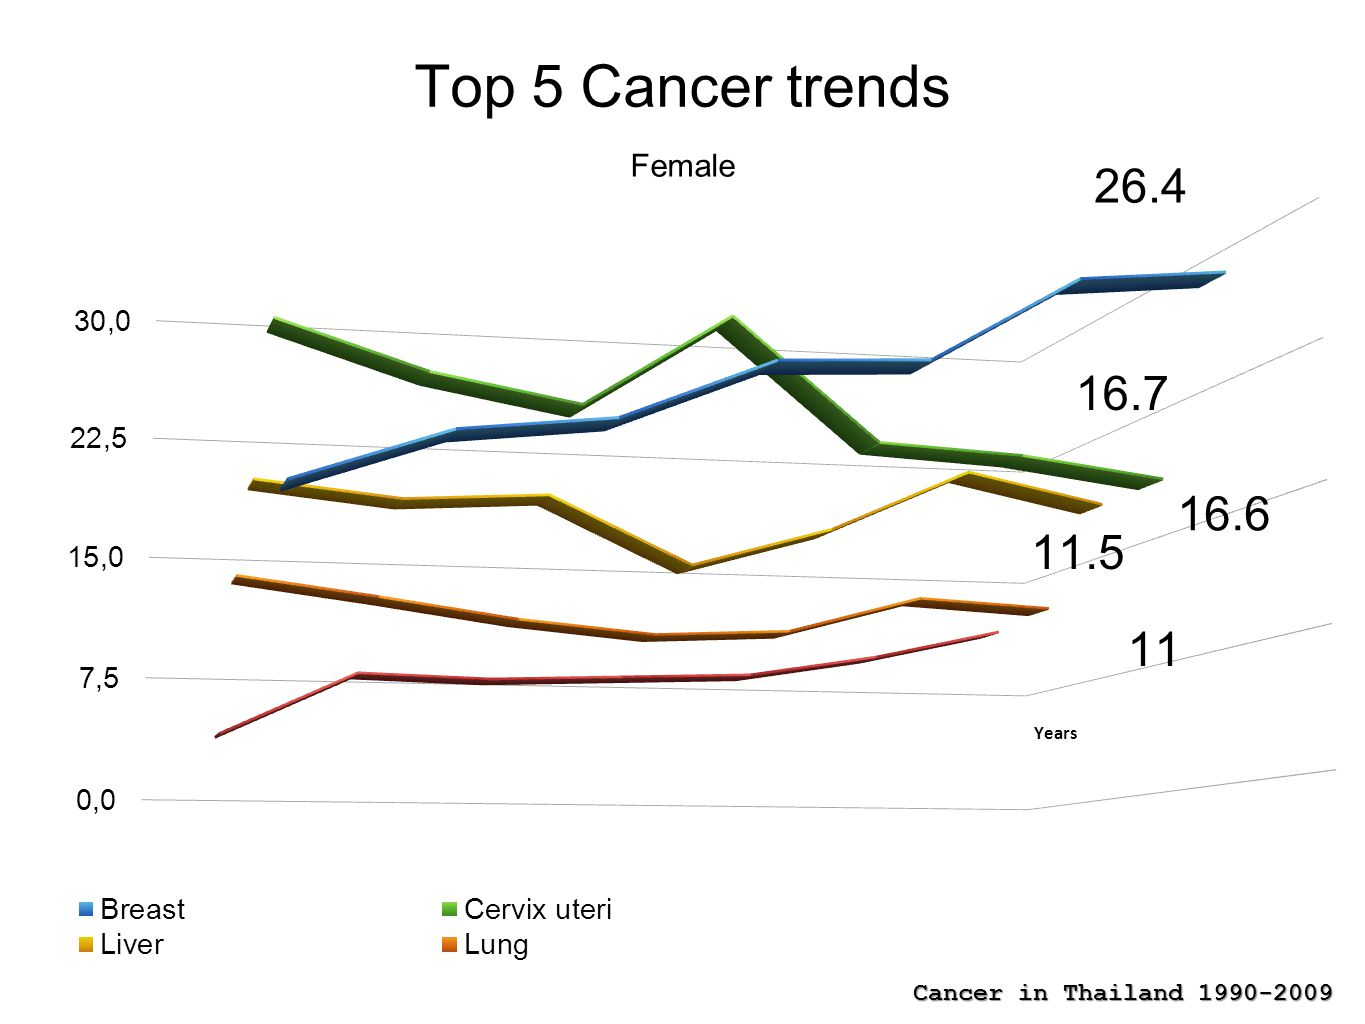 Top 5 Cancer trends 26.4 16.7 16.6 11.5 11 Female